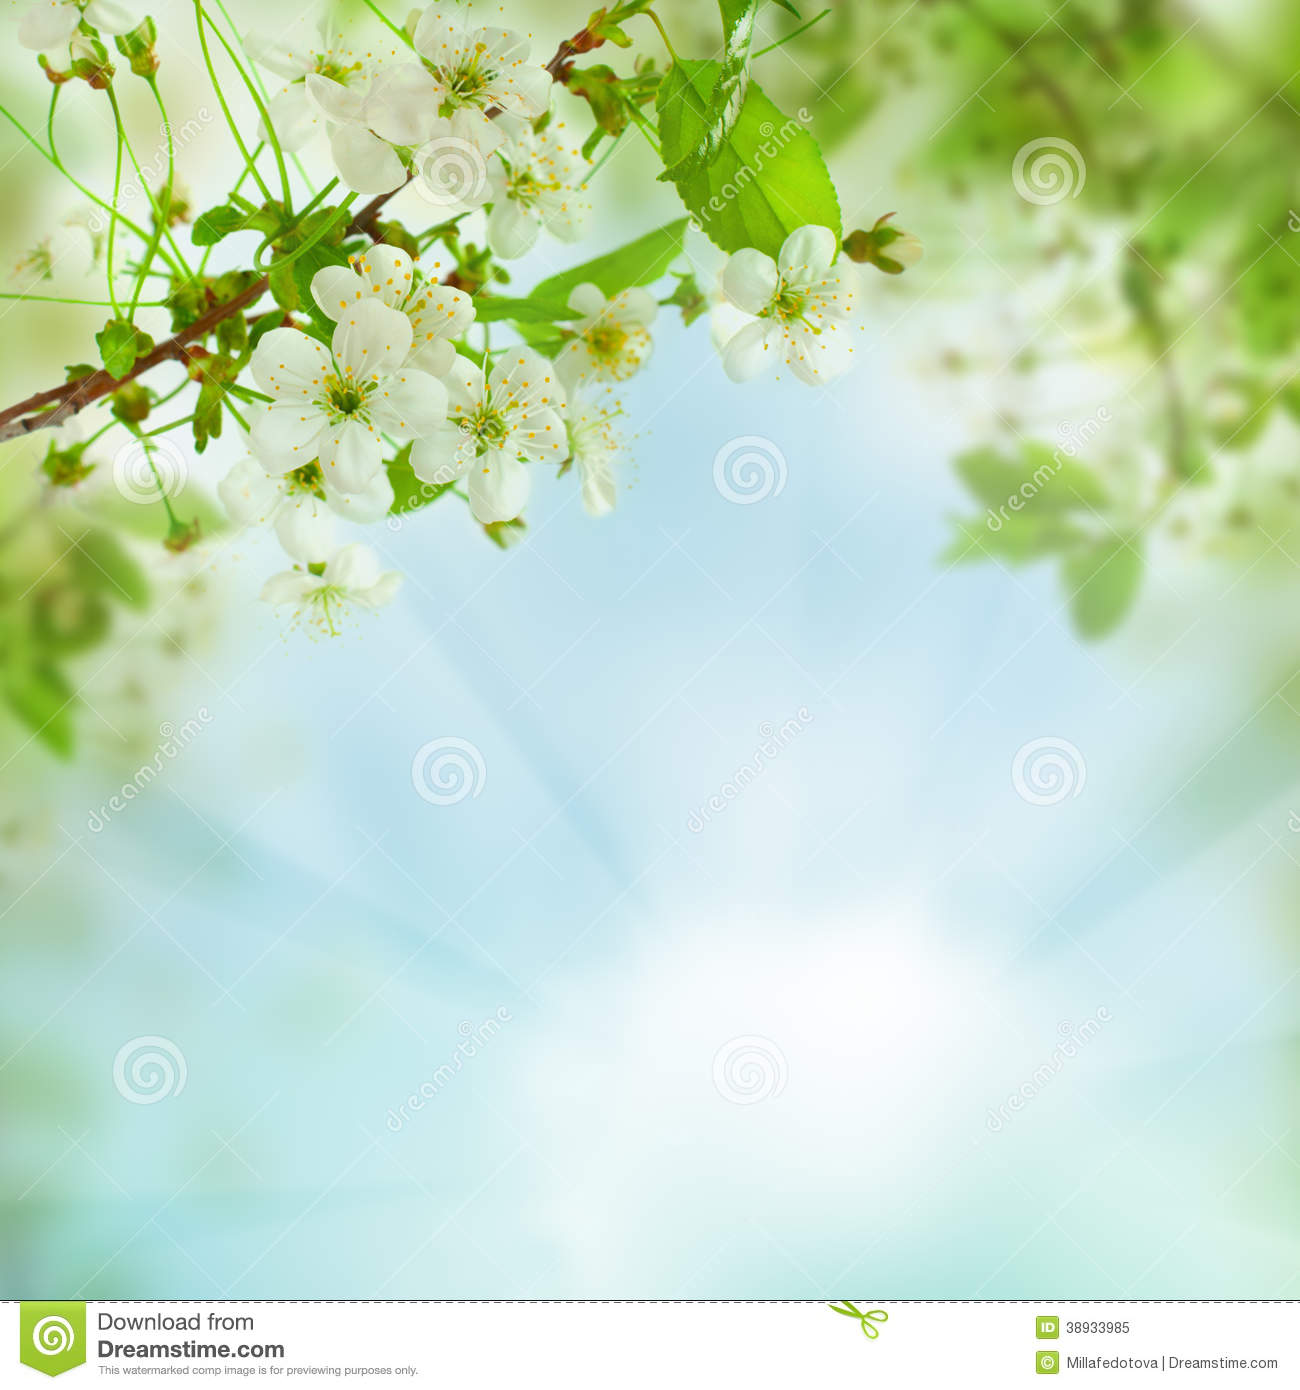 Spring Green Leaves And Flowers Background With Plants: Abstract Nature Concept Stock